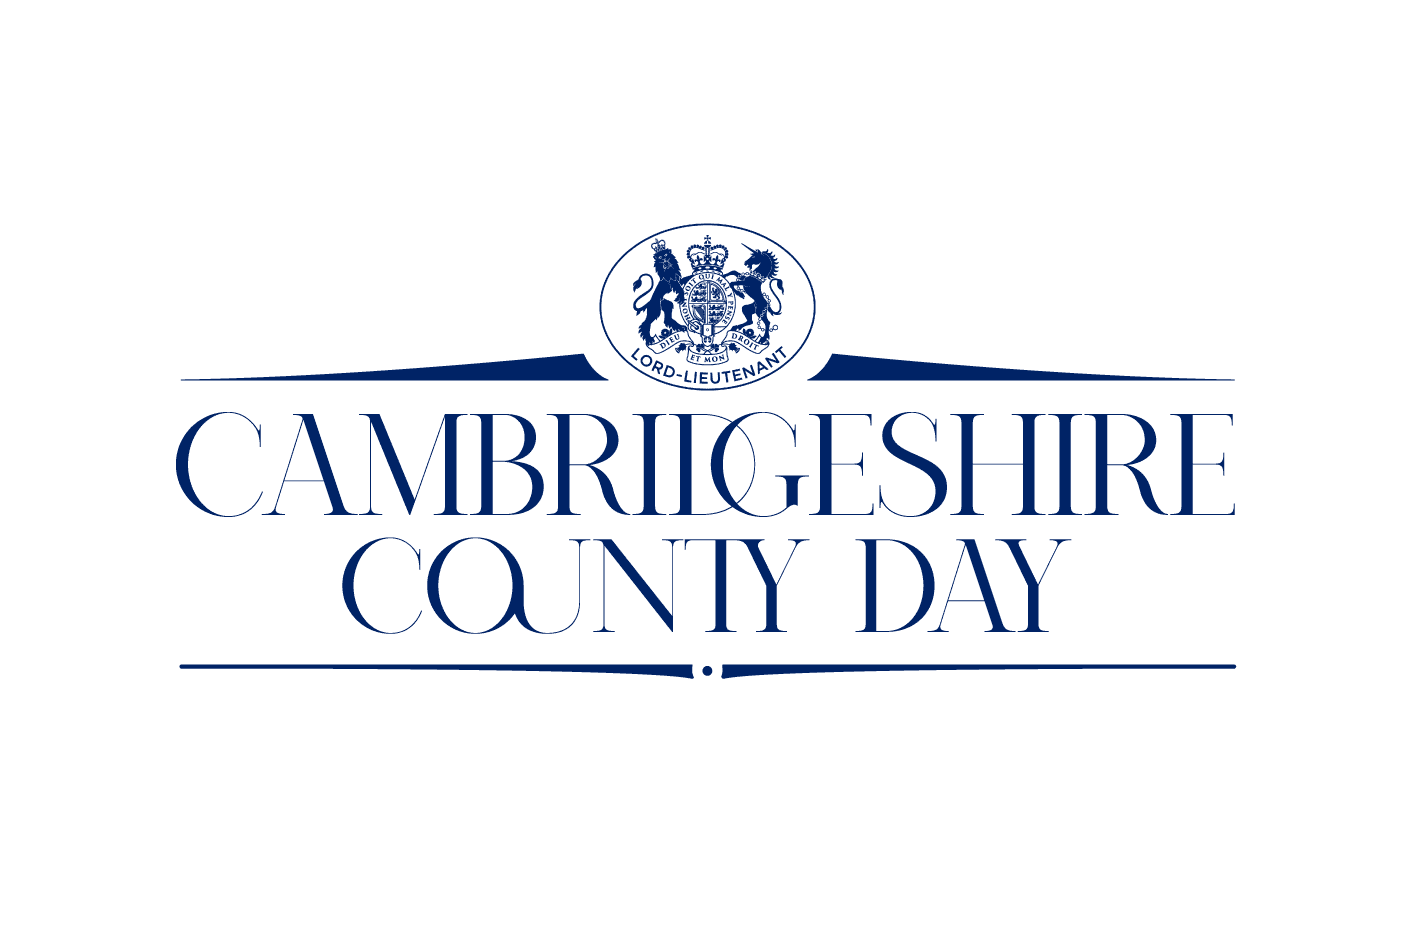 Cambridgeshire County Day logo at smaller size